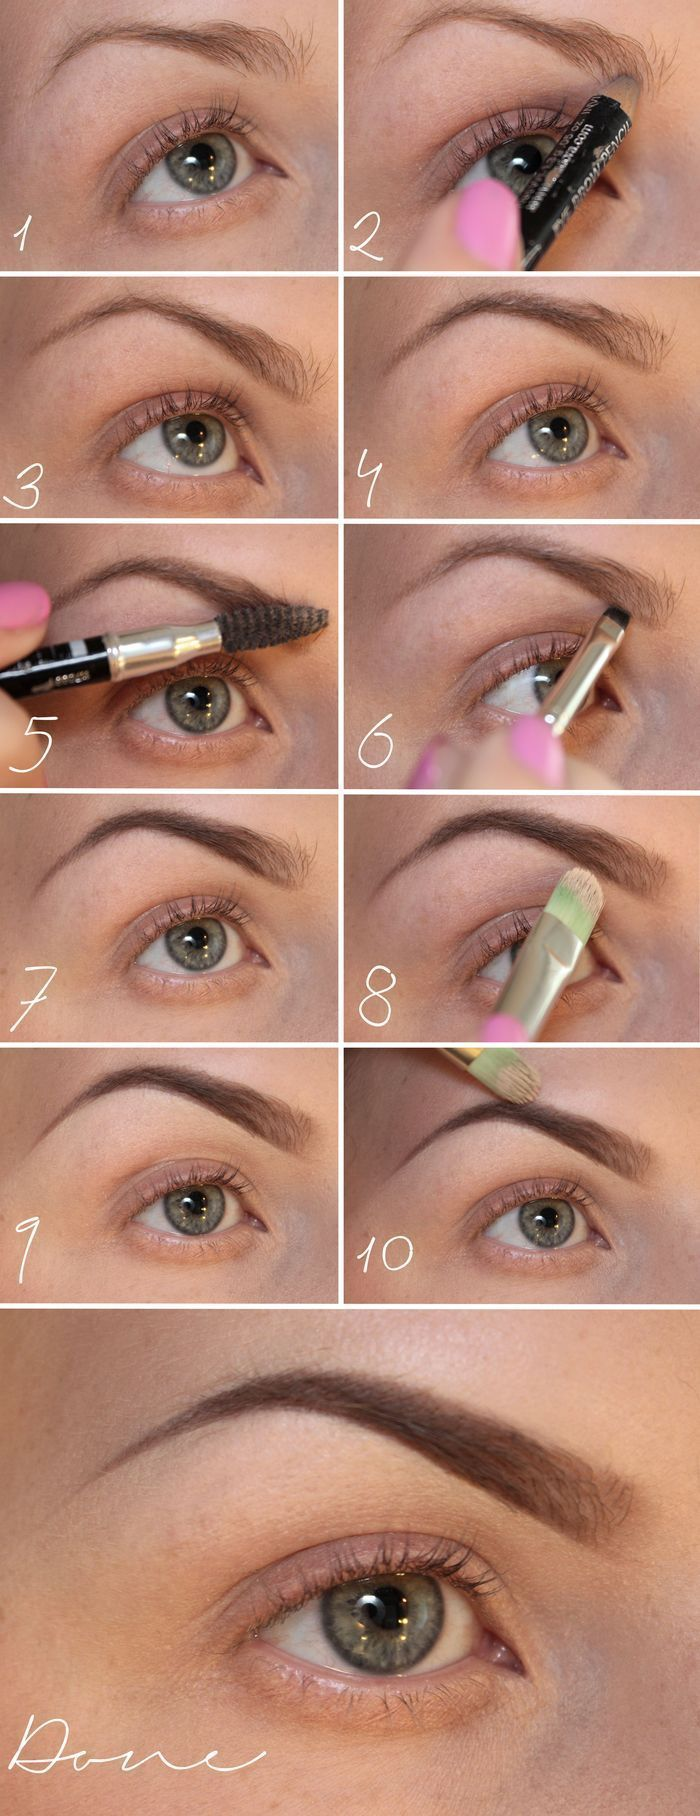 Best Eyebrow Pencils: 25+ Best Ideas About Foundation For Sensitive Skin On